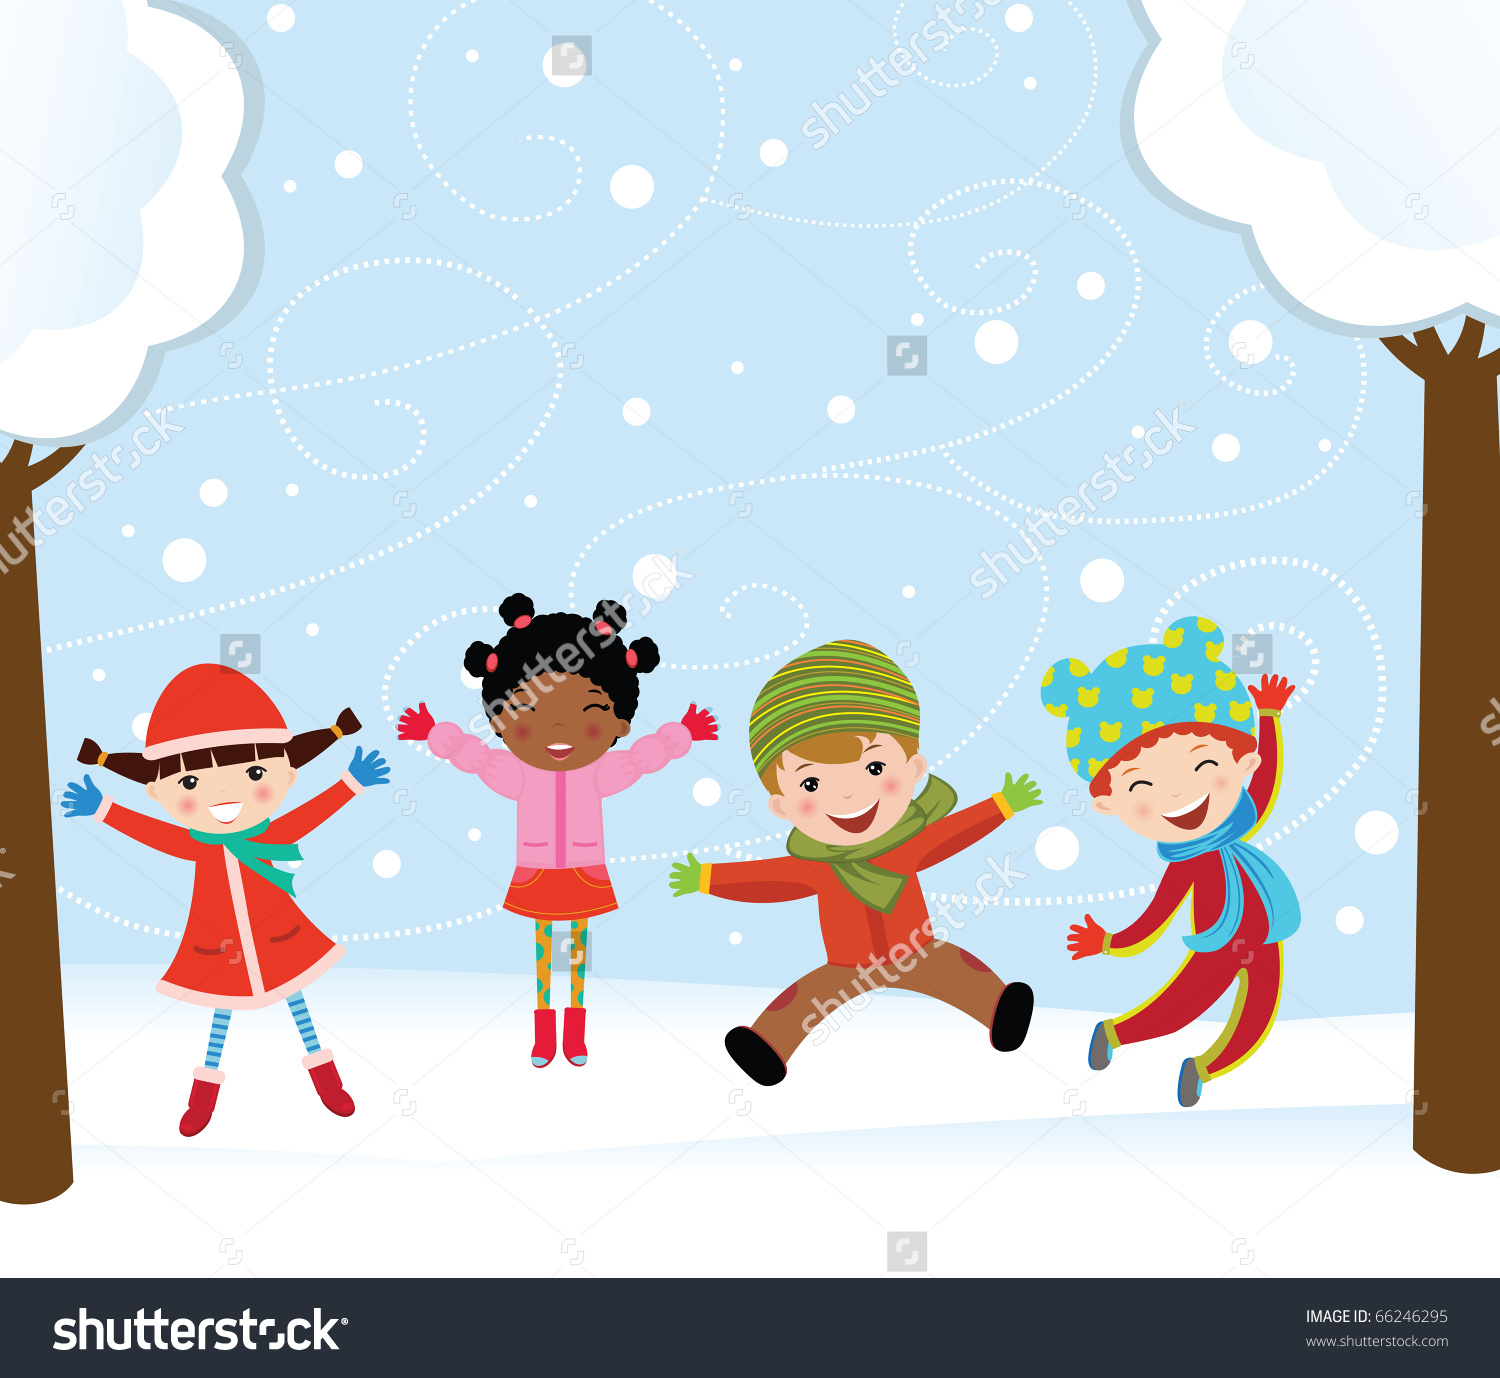 Happy Kids Playing Snow Stock Vector 66246295.